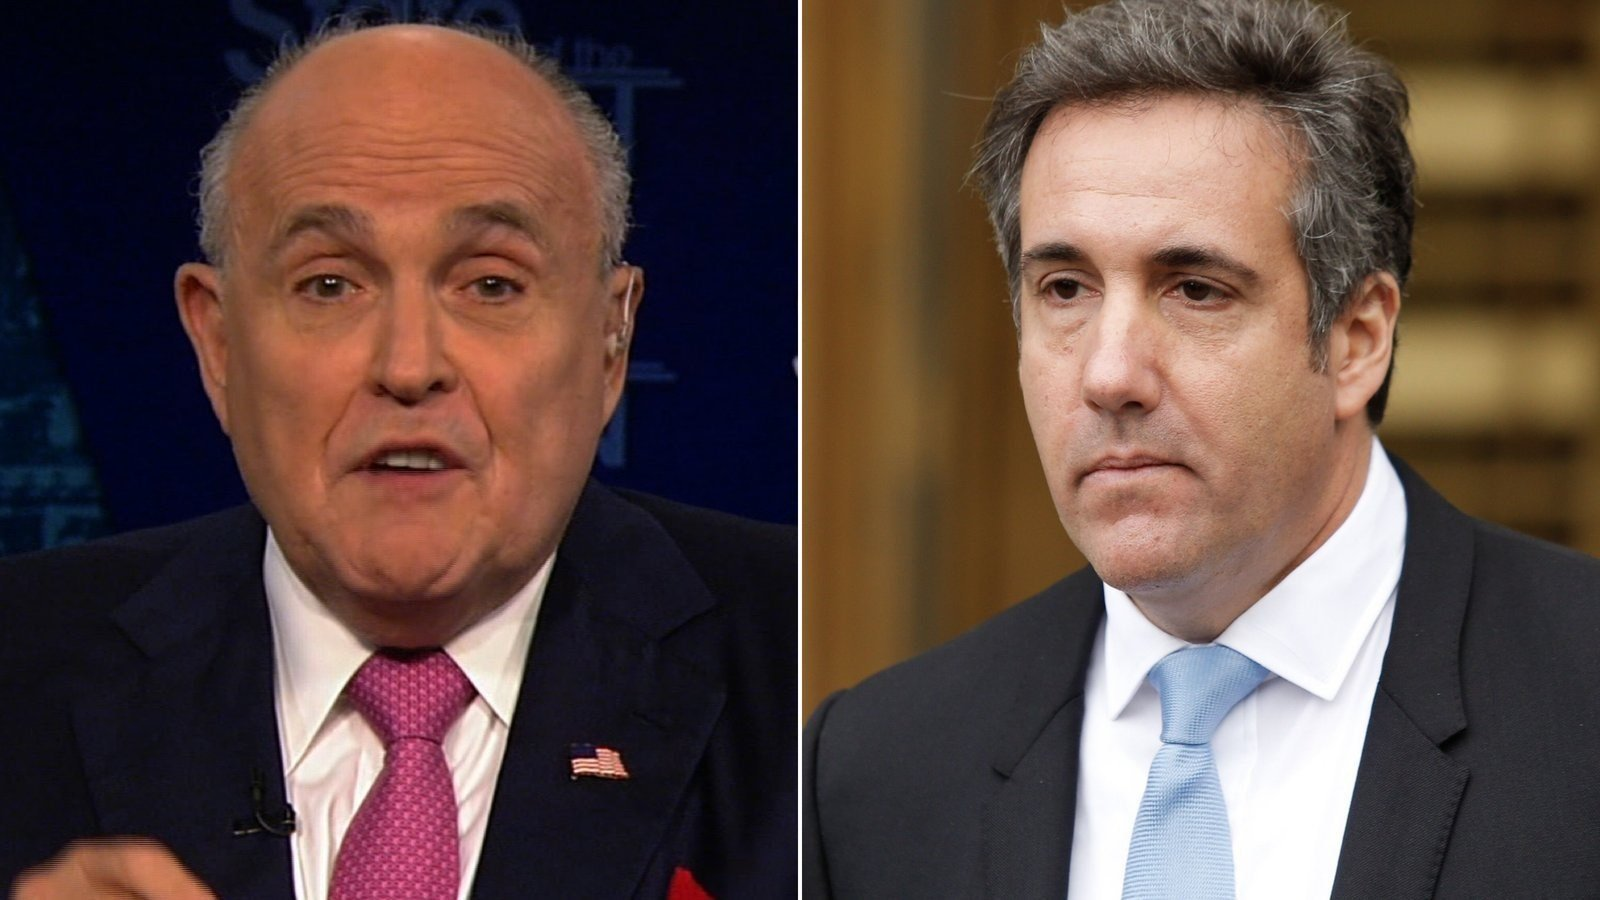 No concerns about anything Michael Cohen could tell authorities: Giuliani